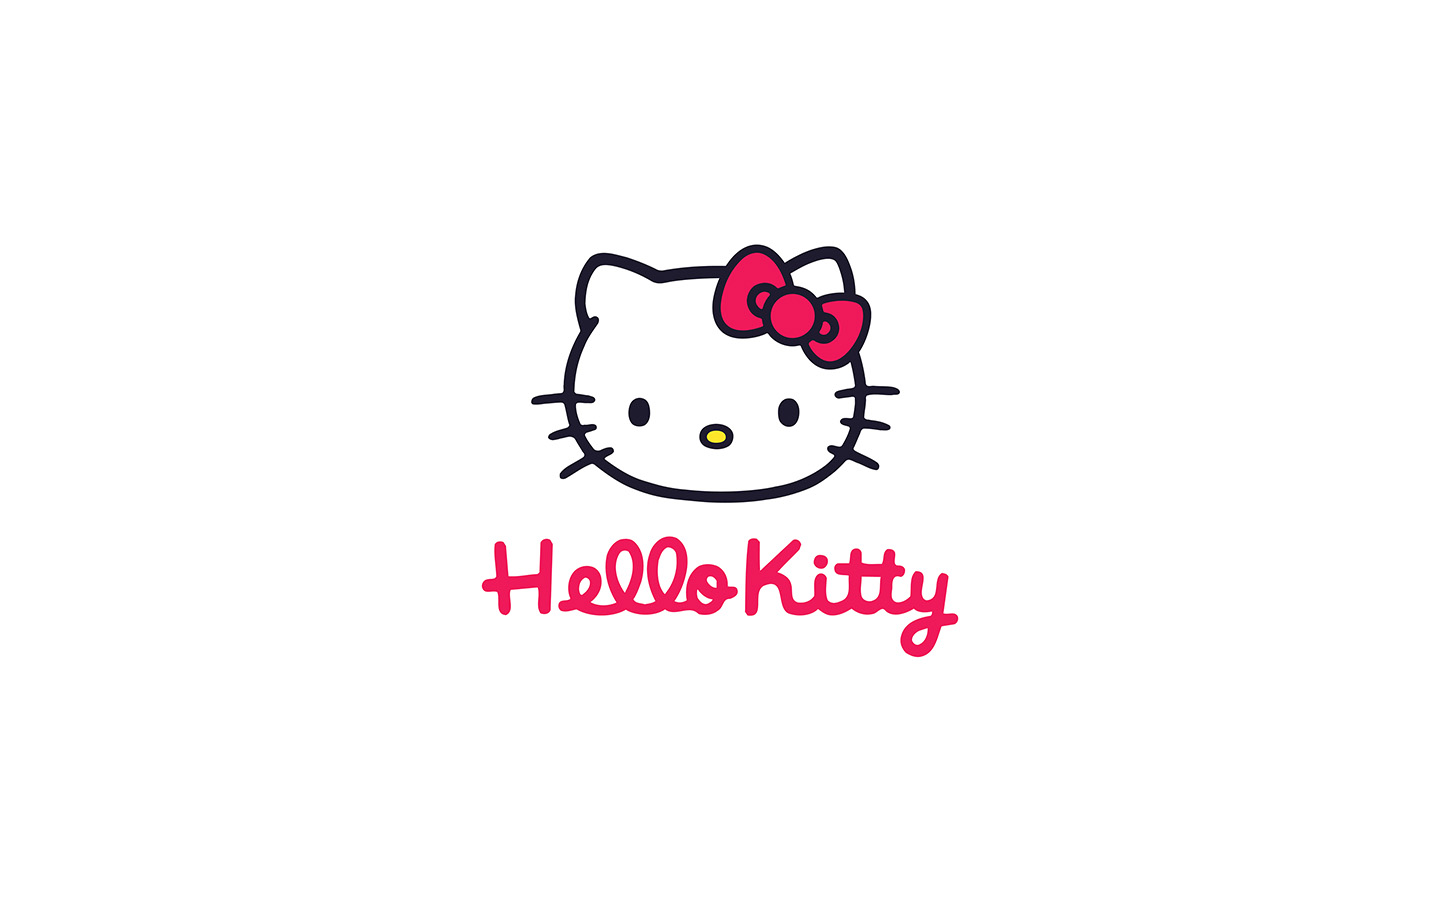 Aq67 Hello Kitty Logo Art Cute White as well DL02NXBBM also At45 Overwatch Widowmaker White Game Art Illustration besides DRTW7PBBM together with Female Troll Face Meme Wallpaper 591. on lg g3 mini